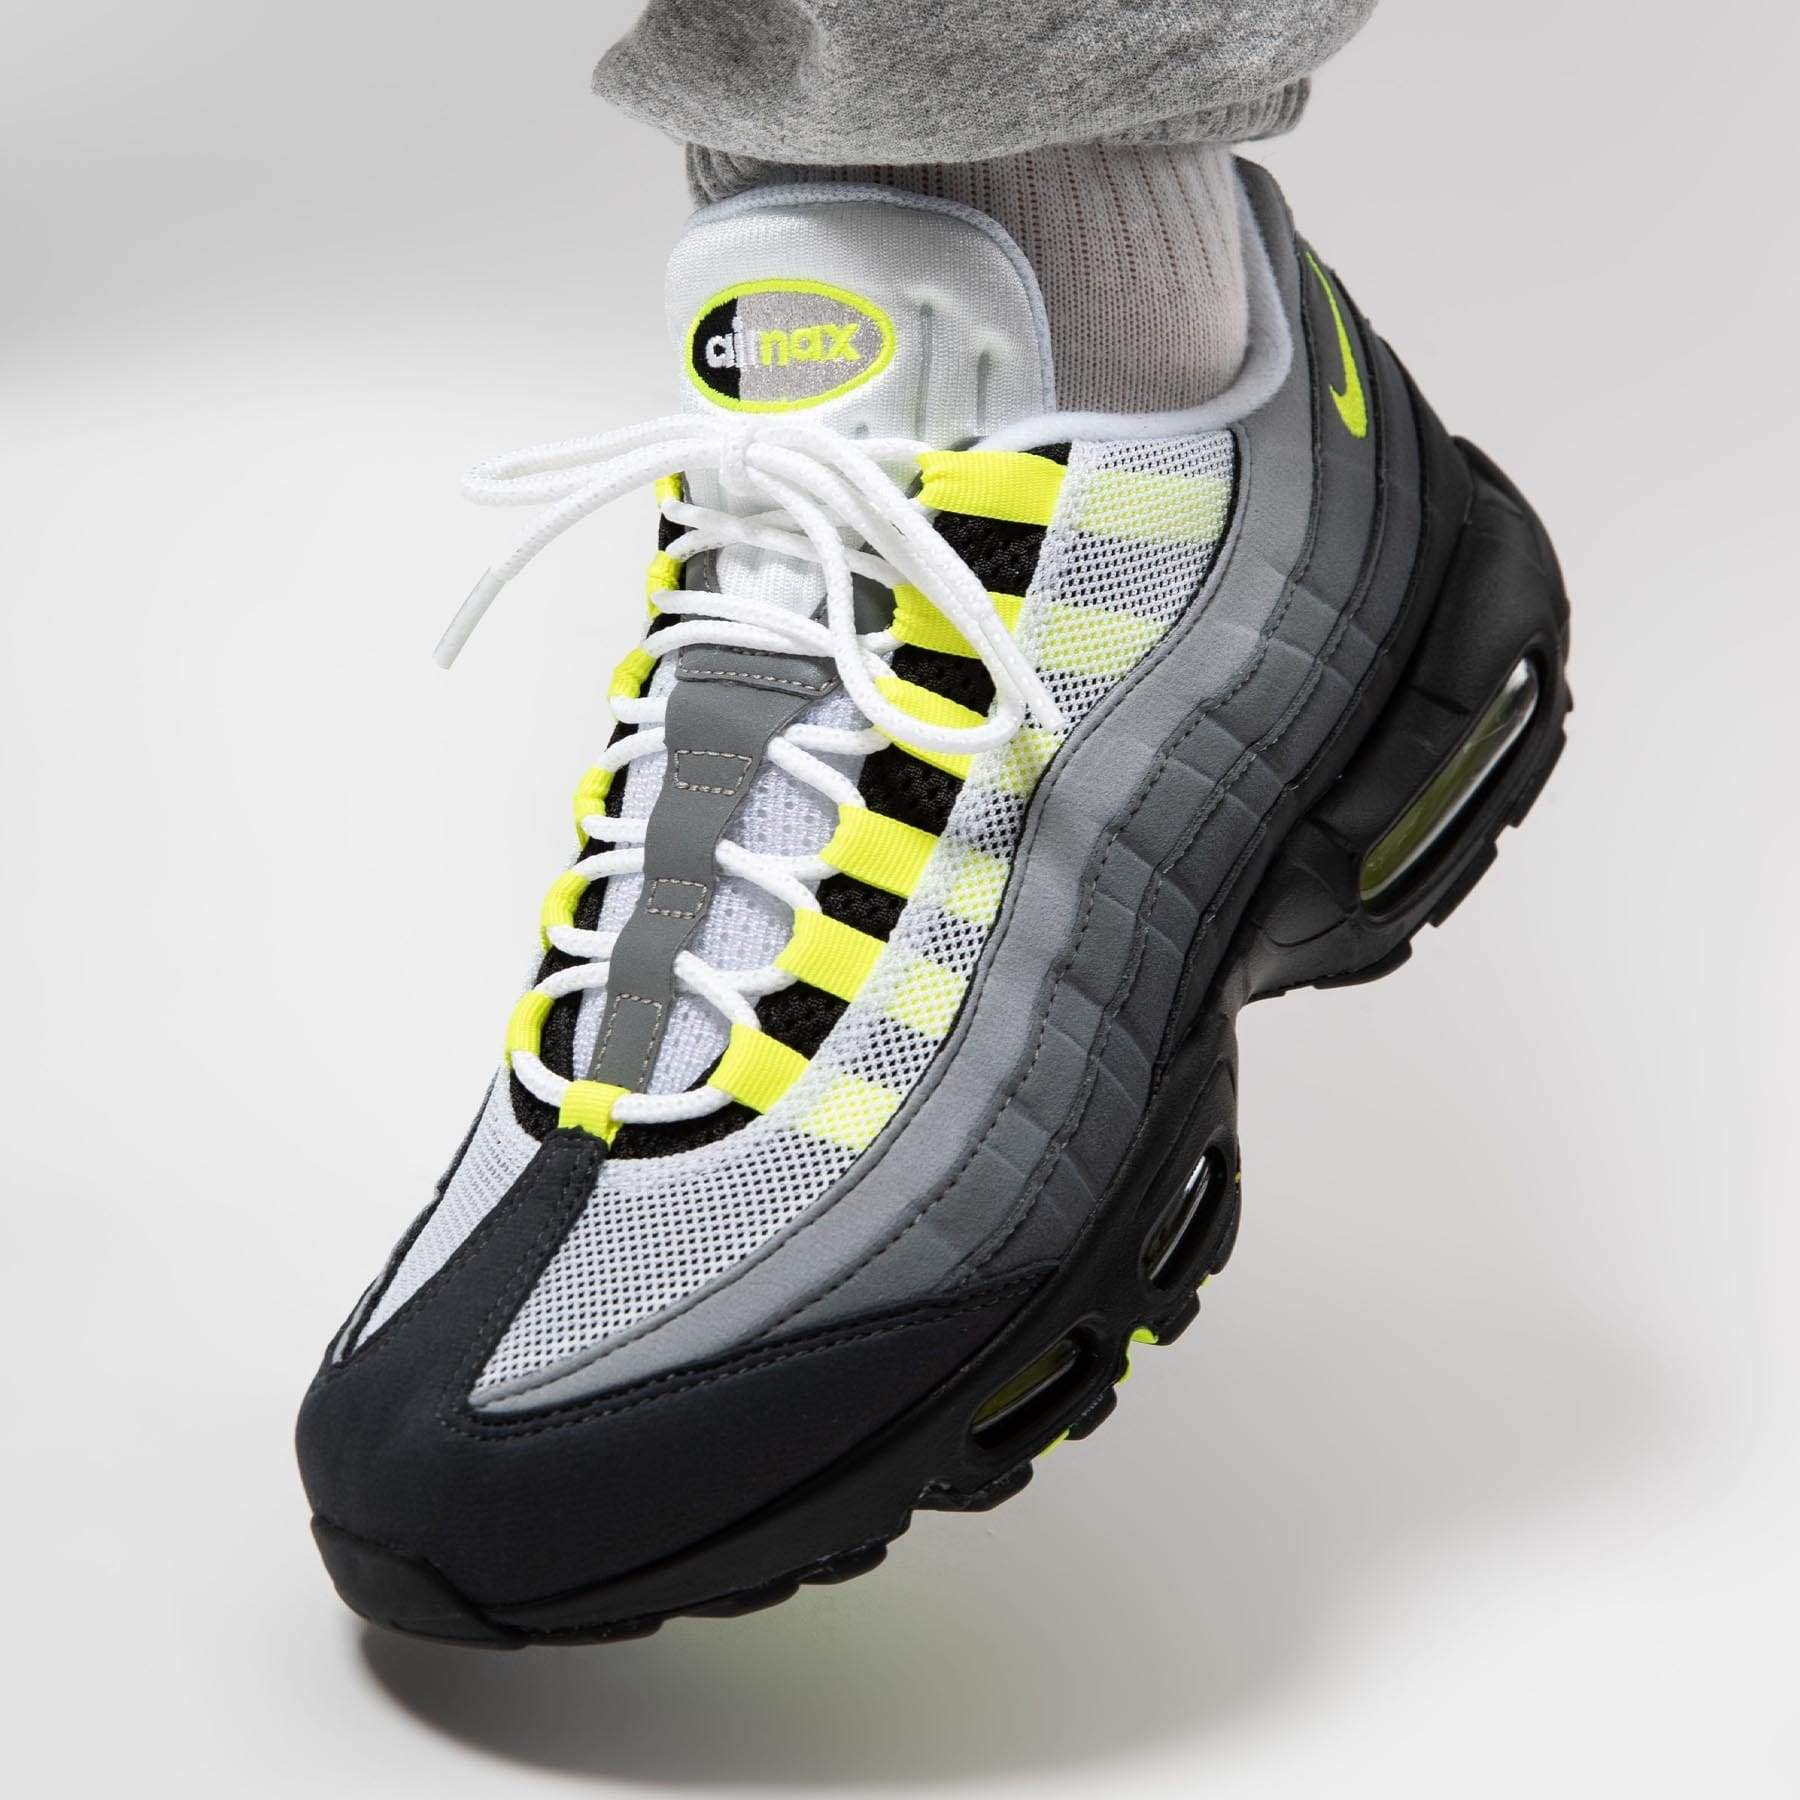 Nike Air Max 95 OG 'Neon' 2020 - Kick Game